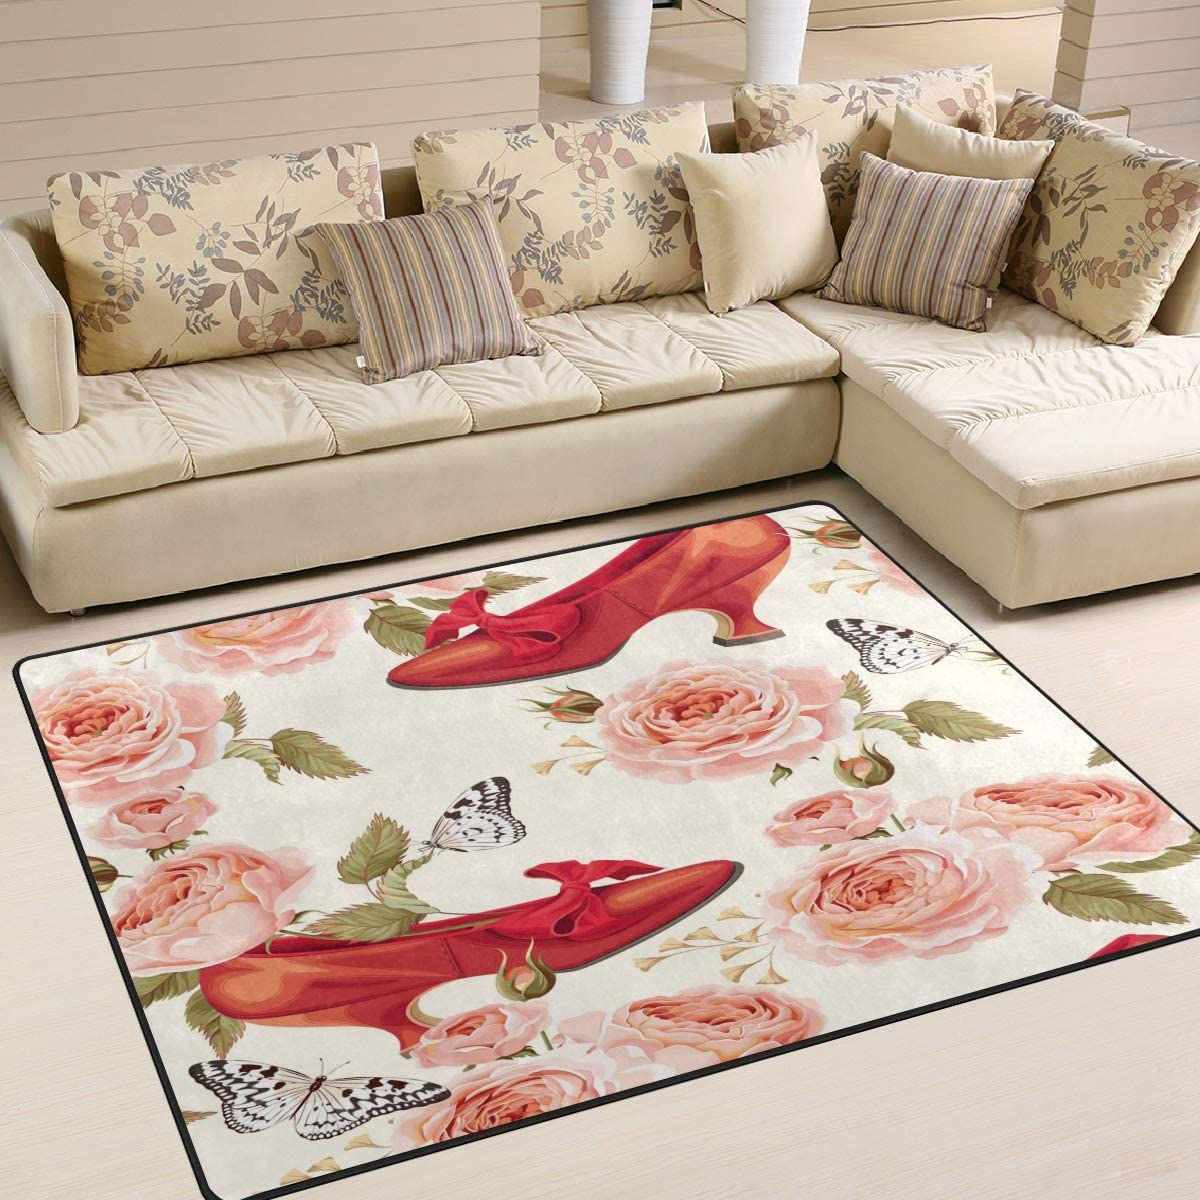 ALAZA Vintage Red Shoes Butterfly Flower Area Rug Rugs for Living Room Bedroom 7 x 5